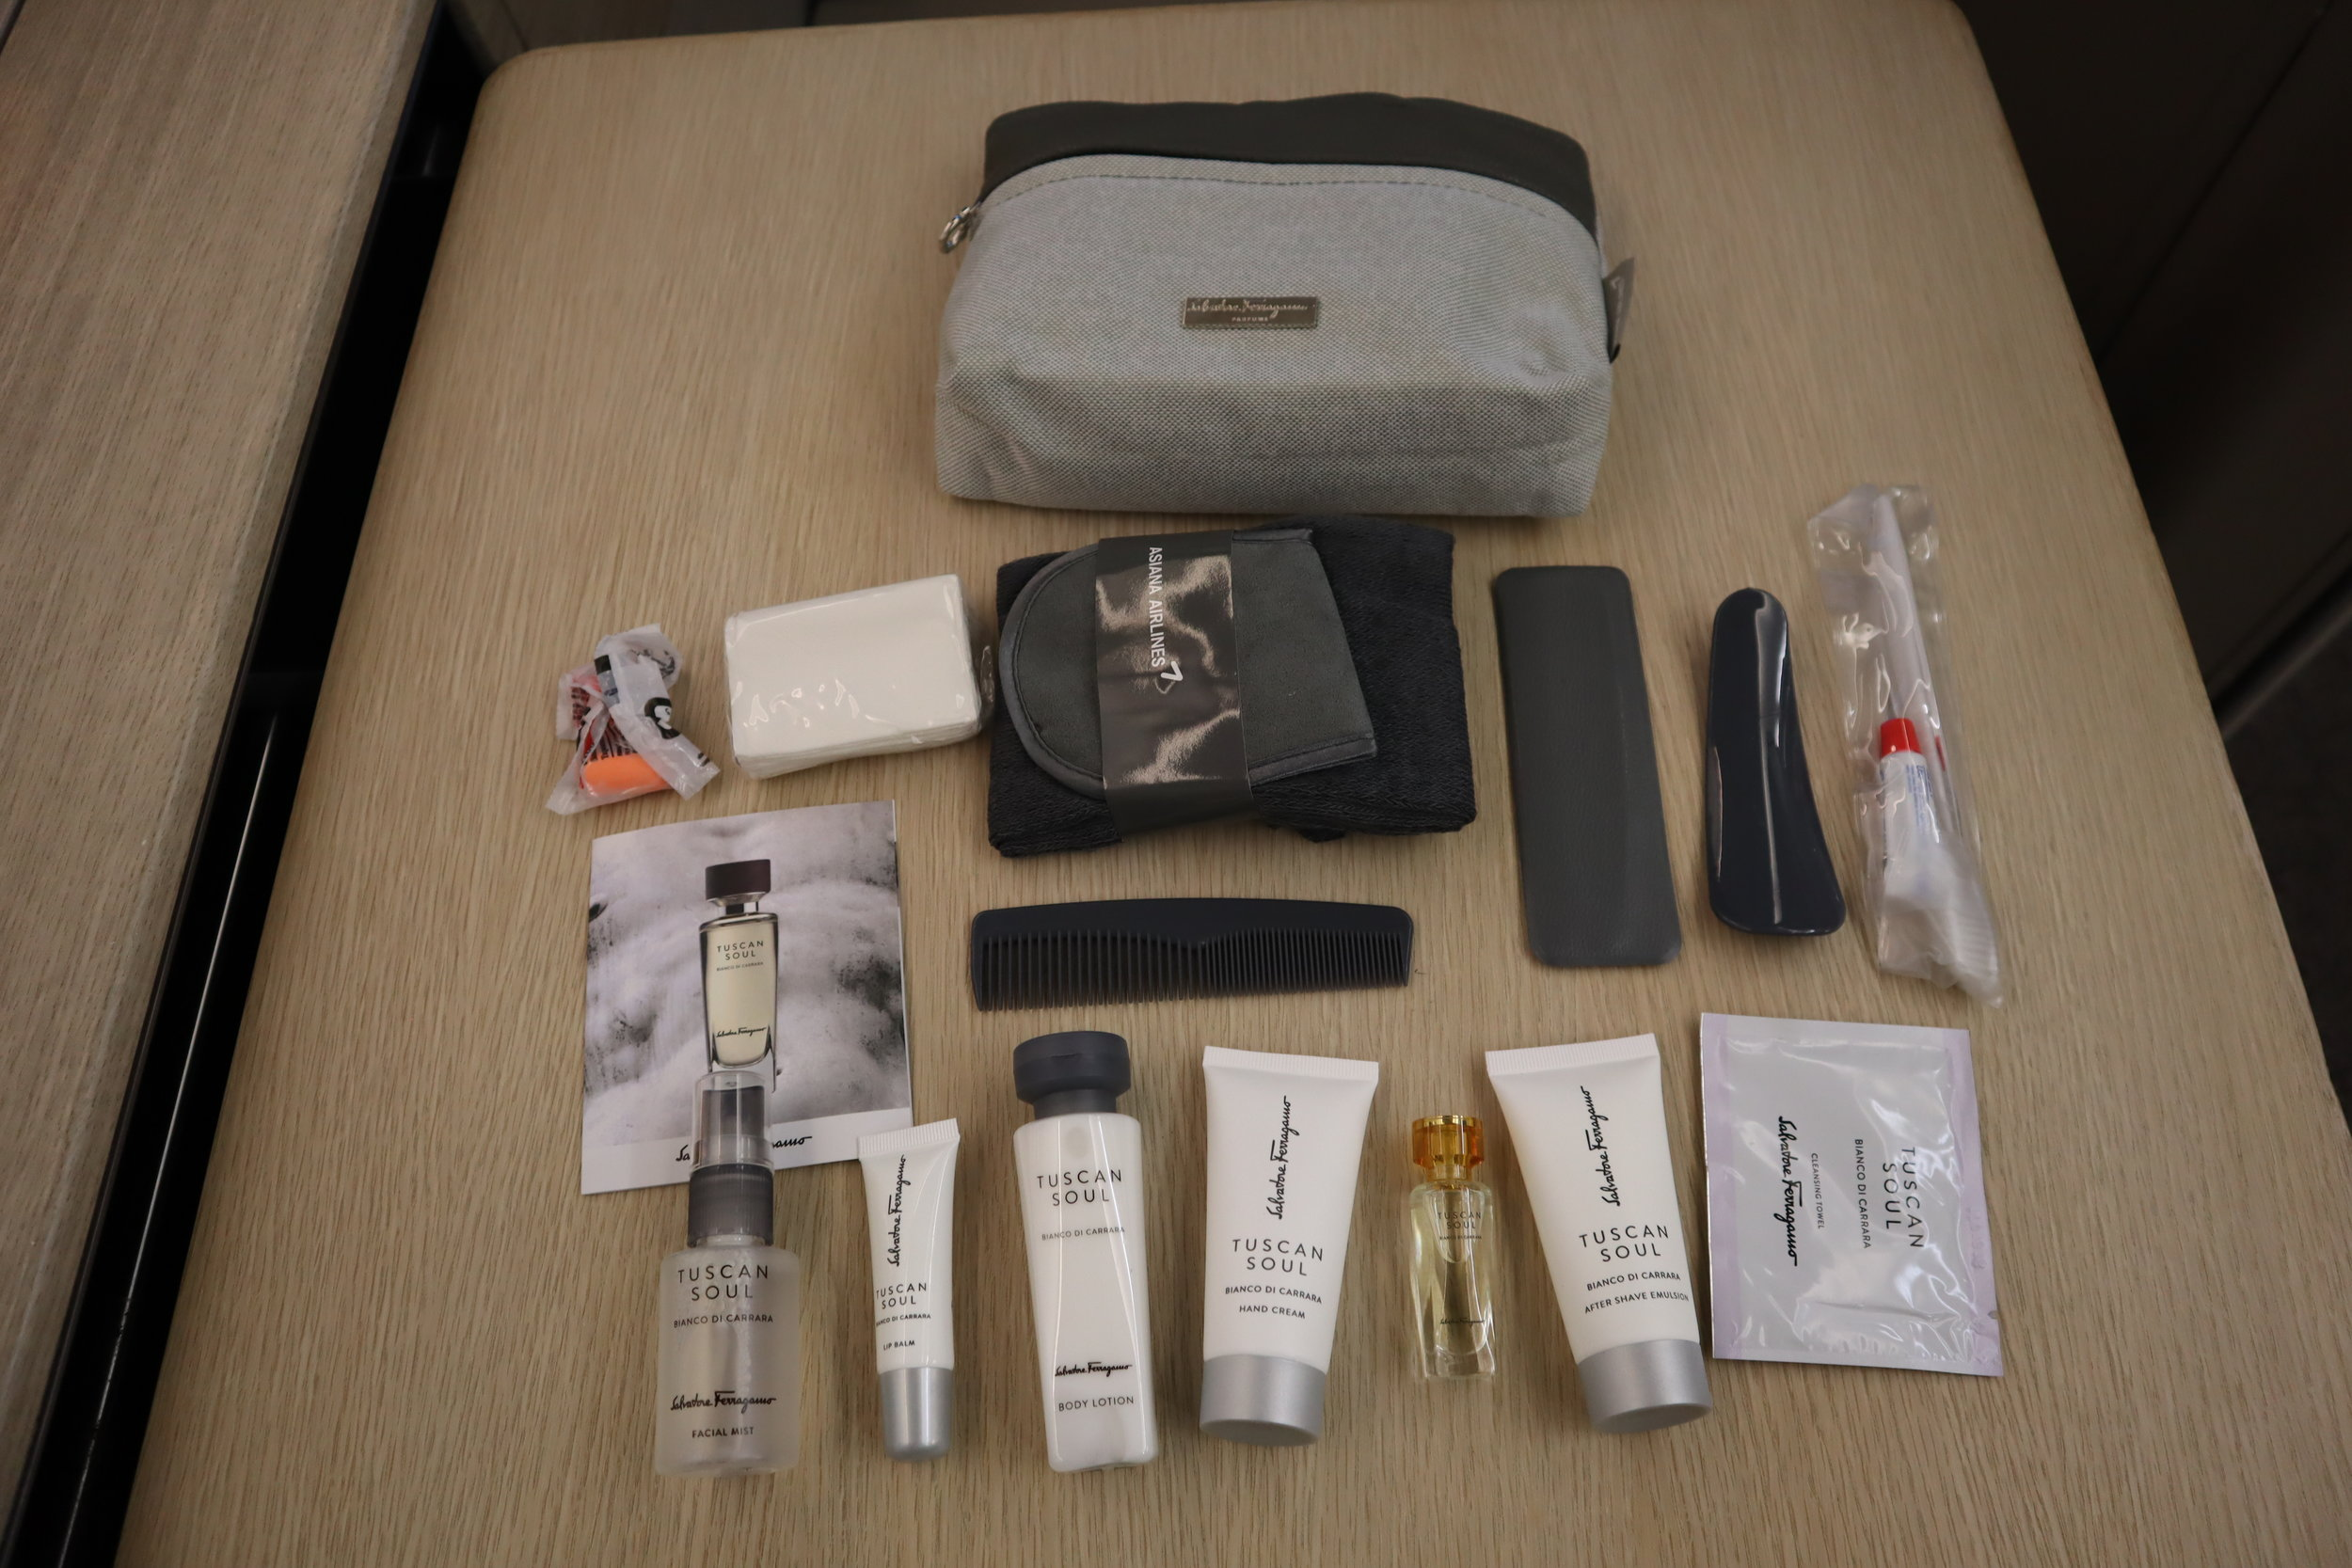 Asiana Airlines First Class – Amenity kit contents